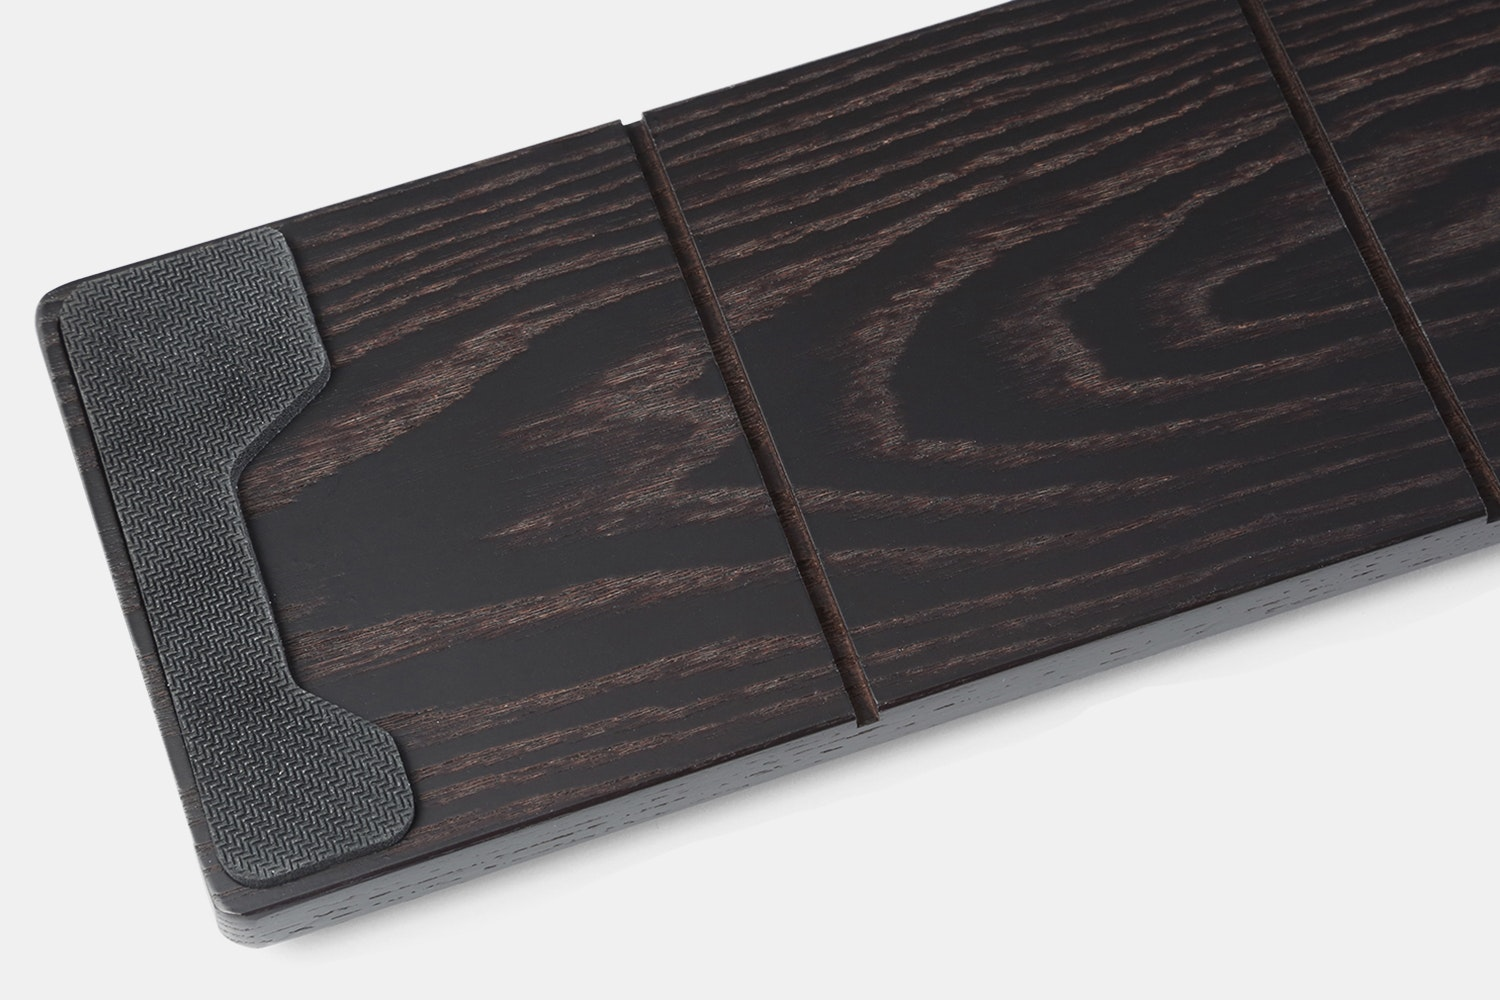 Glorious PC Gaming Race Wooden Wrist Rest Bundle